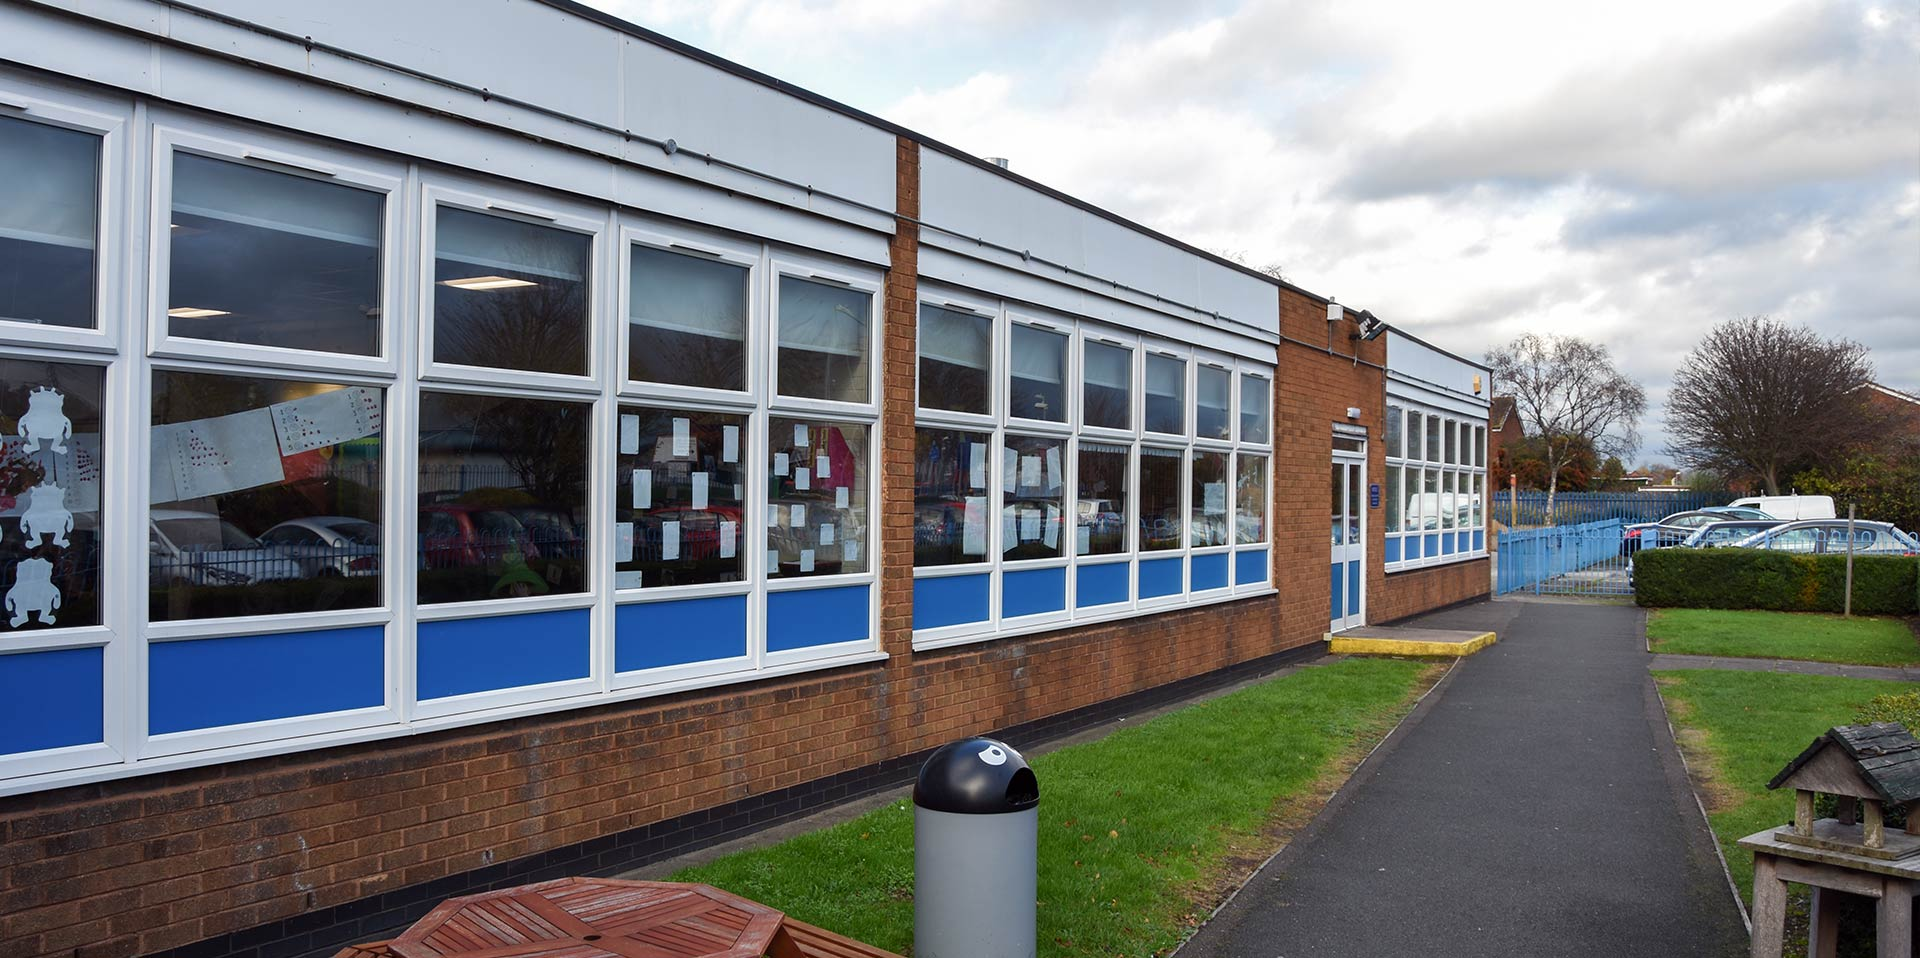 Primary school project with new windows, doors and fascia